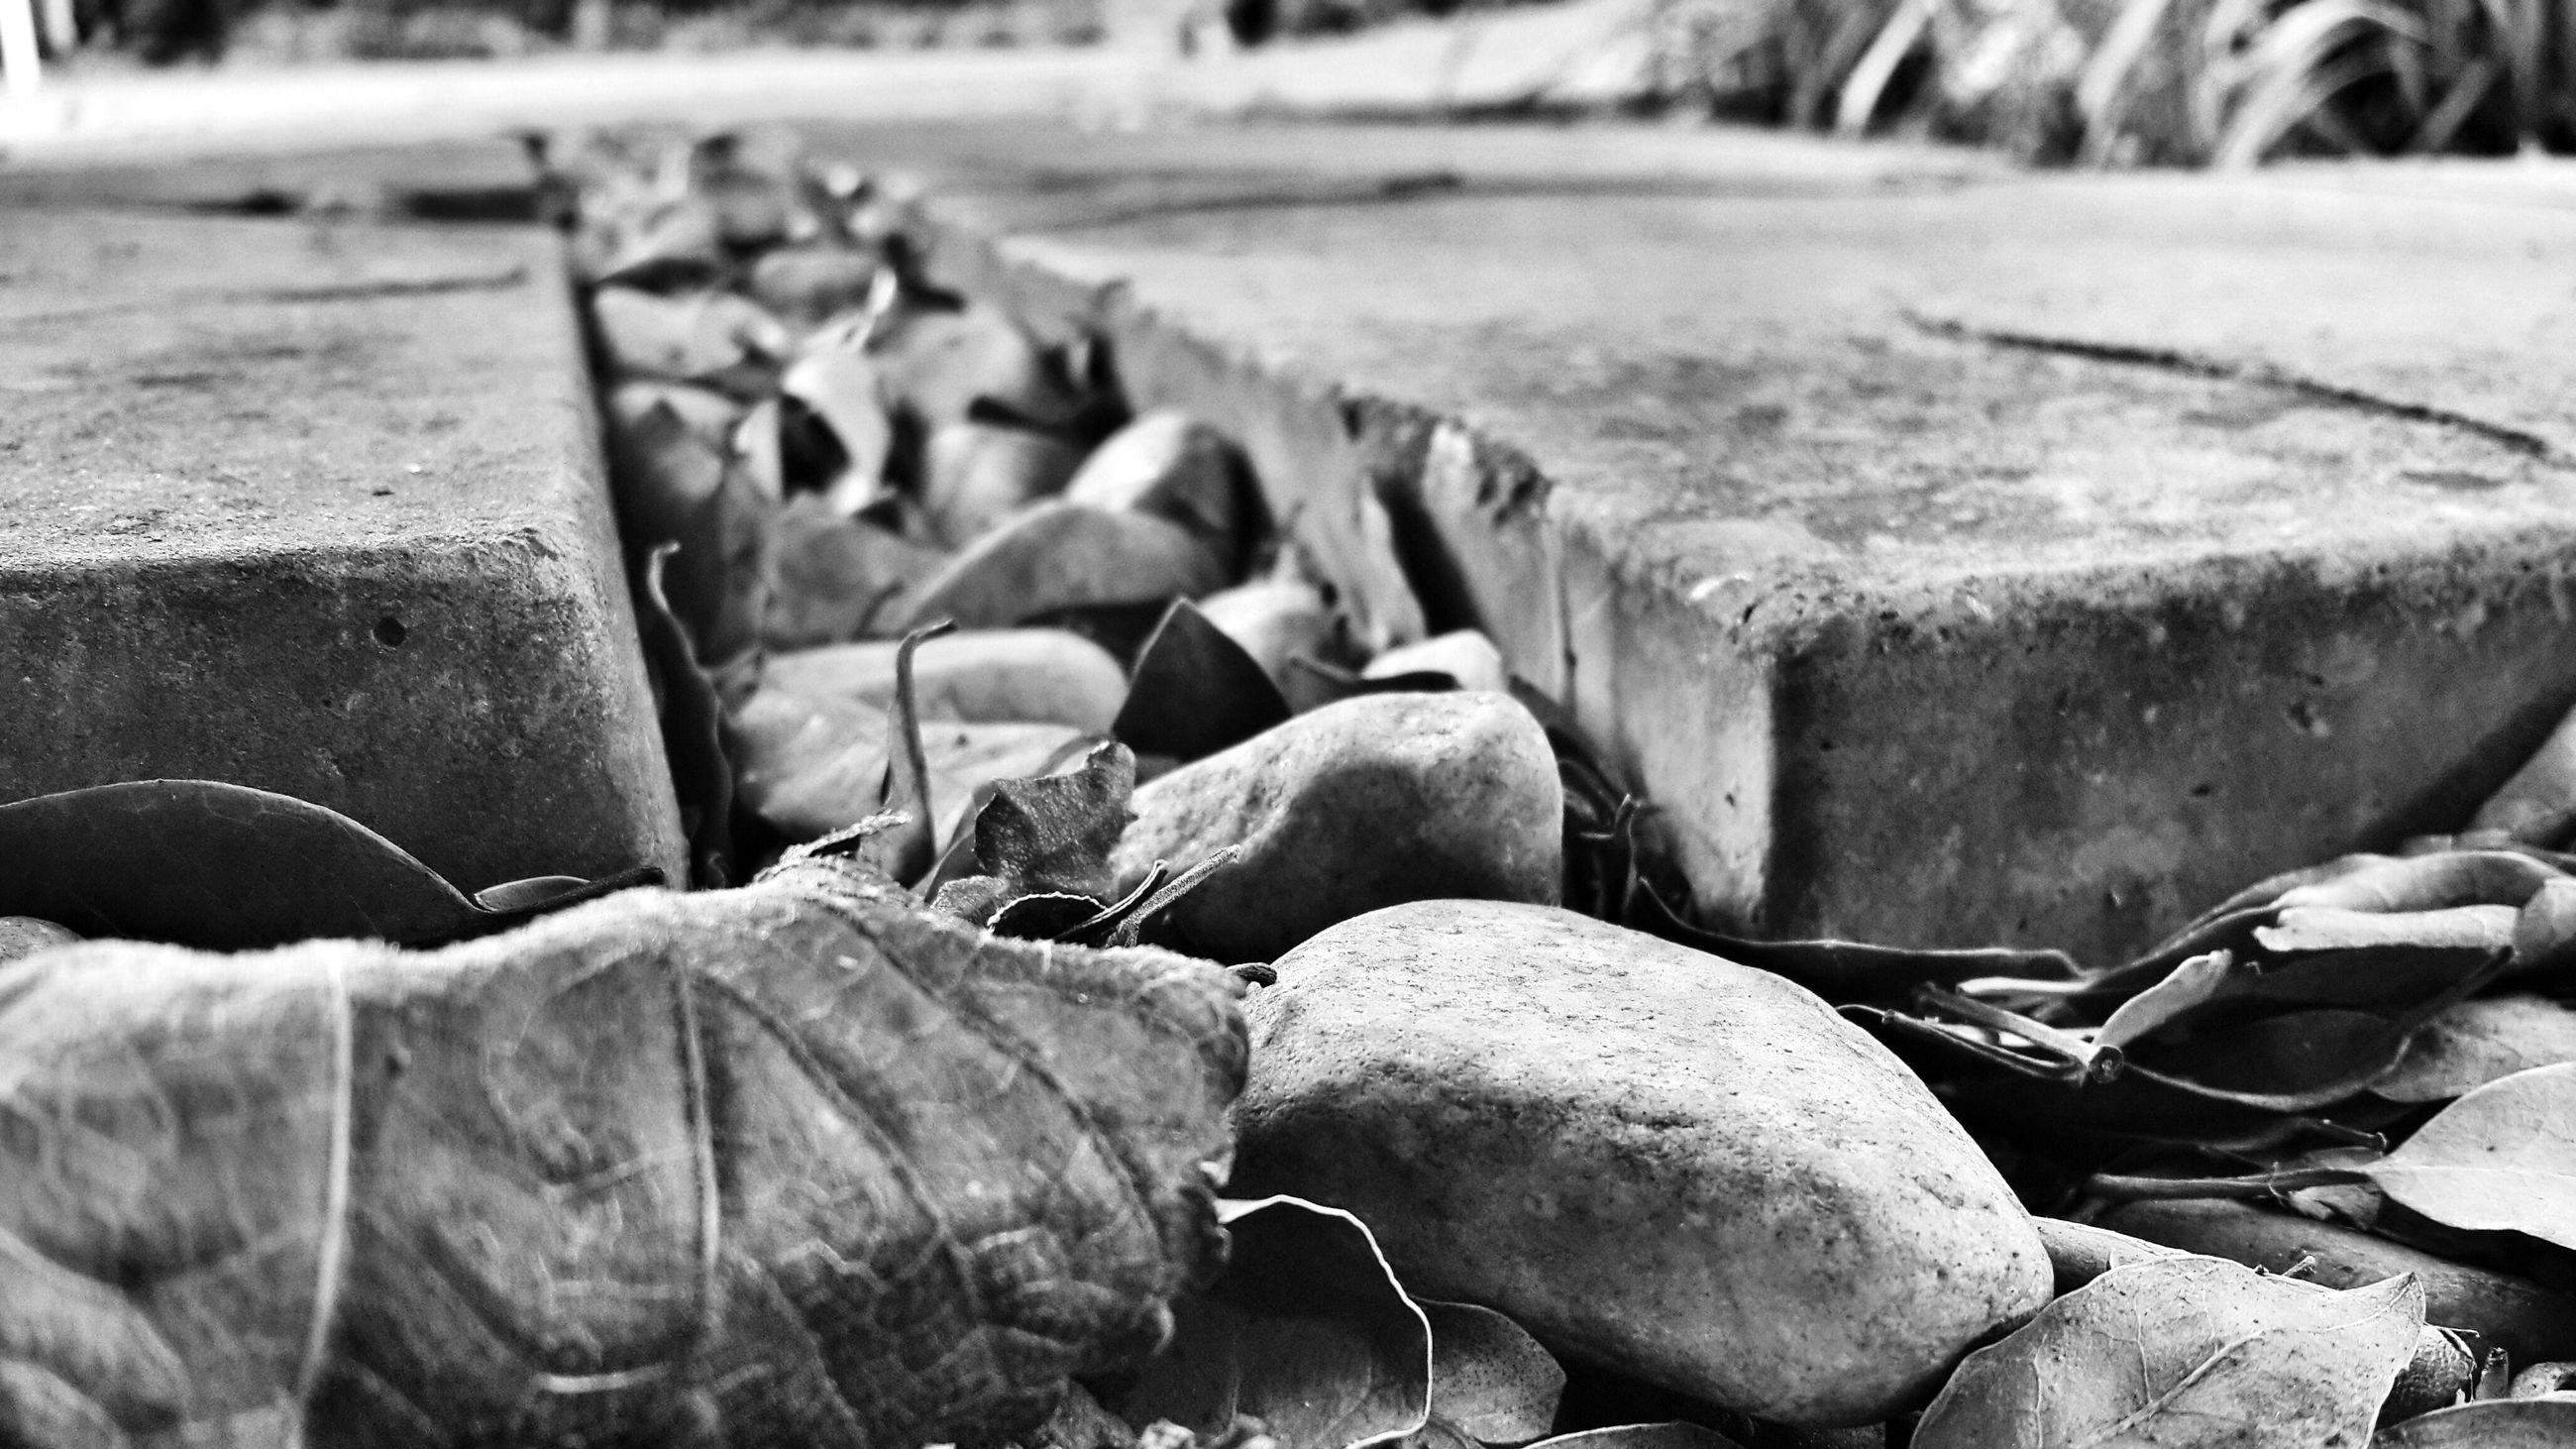 focus on foreground, field, day, close-up, outdoors, wood - material, selective focus, stack, stone - object, high angle view, nature, large group of objects, leaf, dry, dirt, grass, log, abundance, sunlight, textured